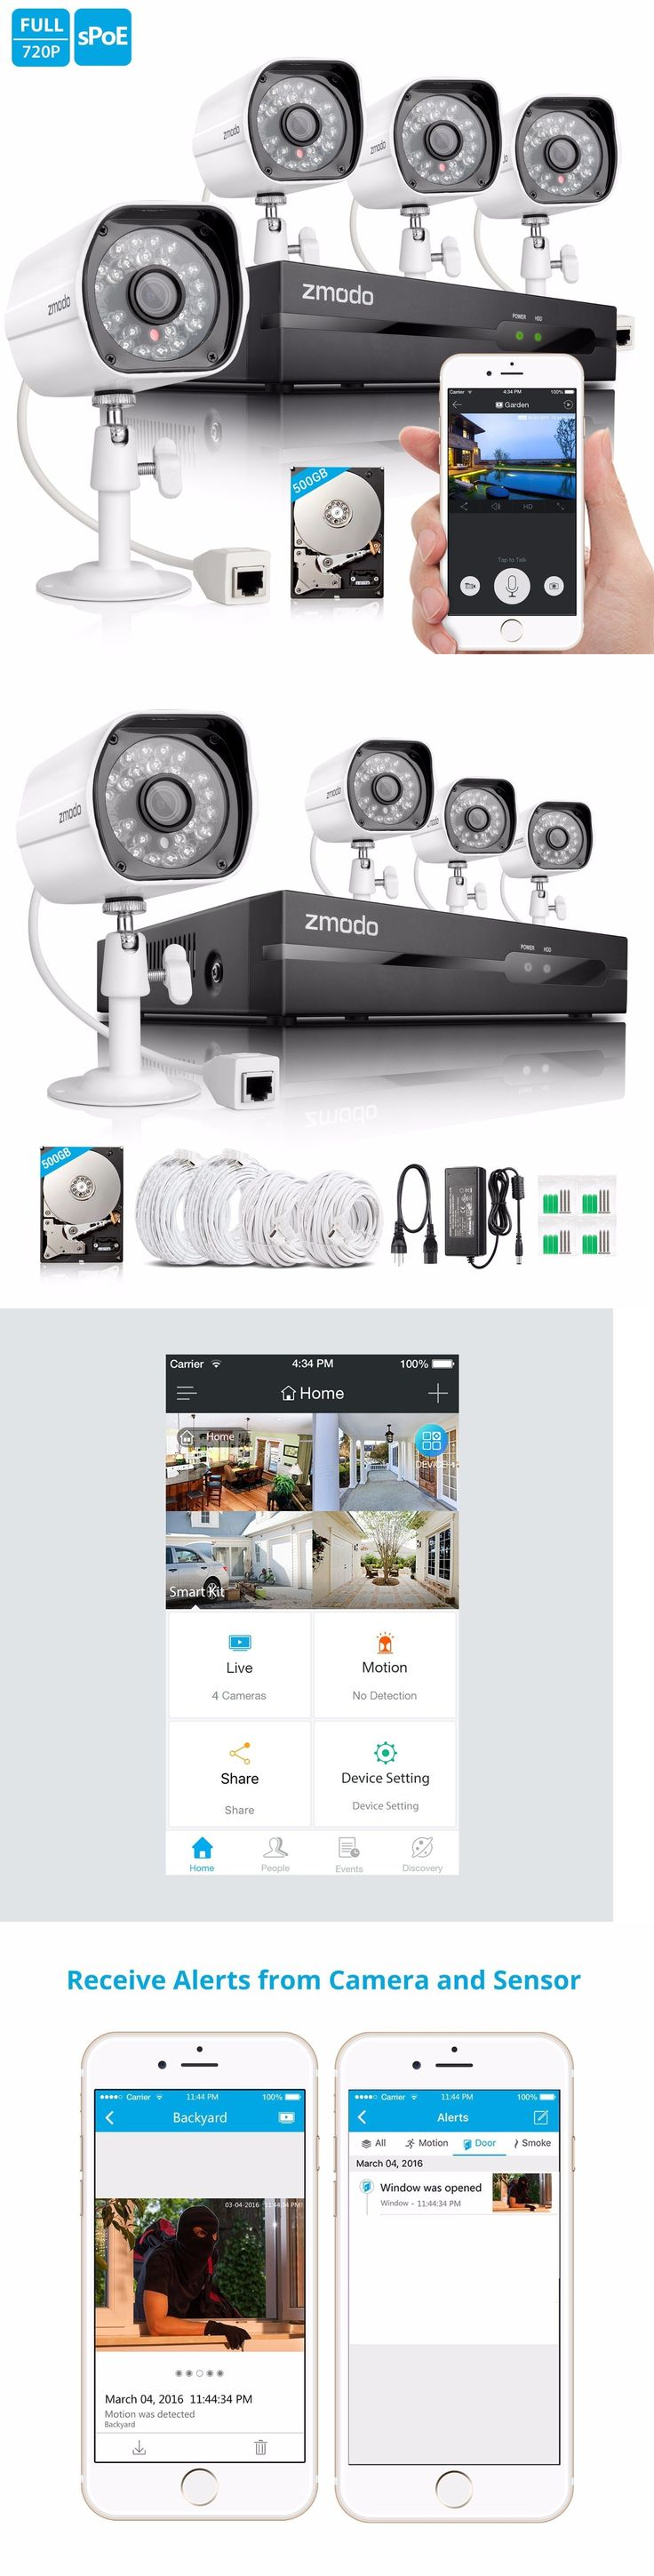 19 best security & protection images on pinterest | home security